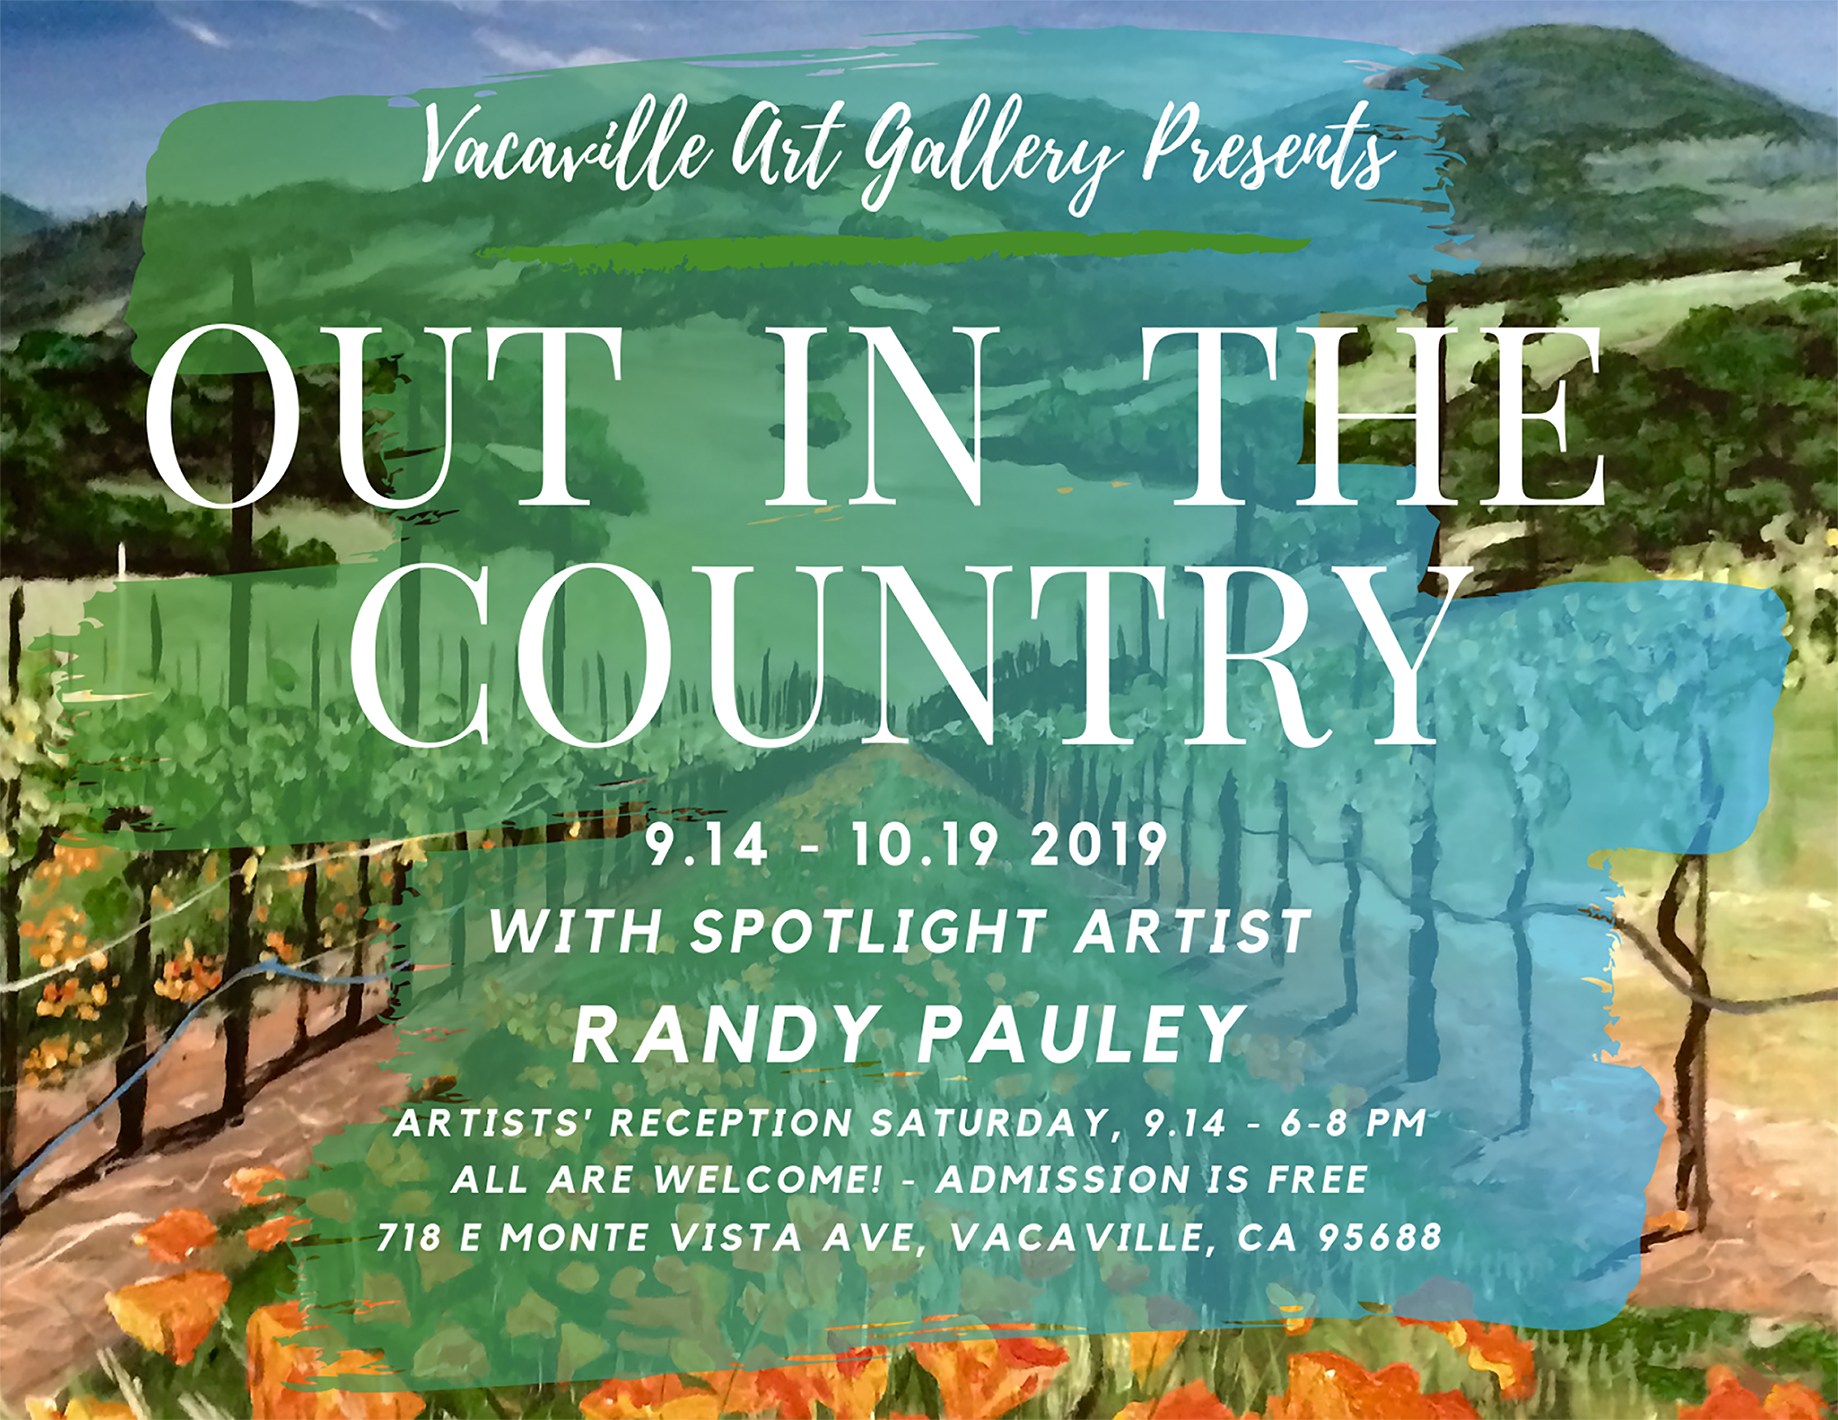 Vacaville Art Gallery Presents Out in the Country